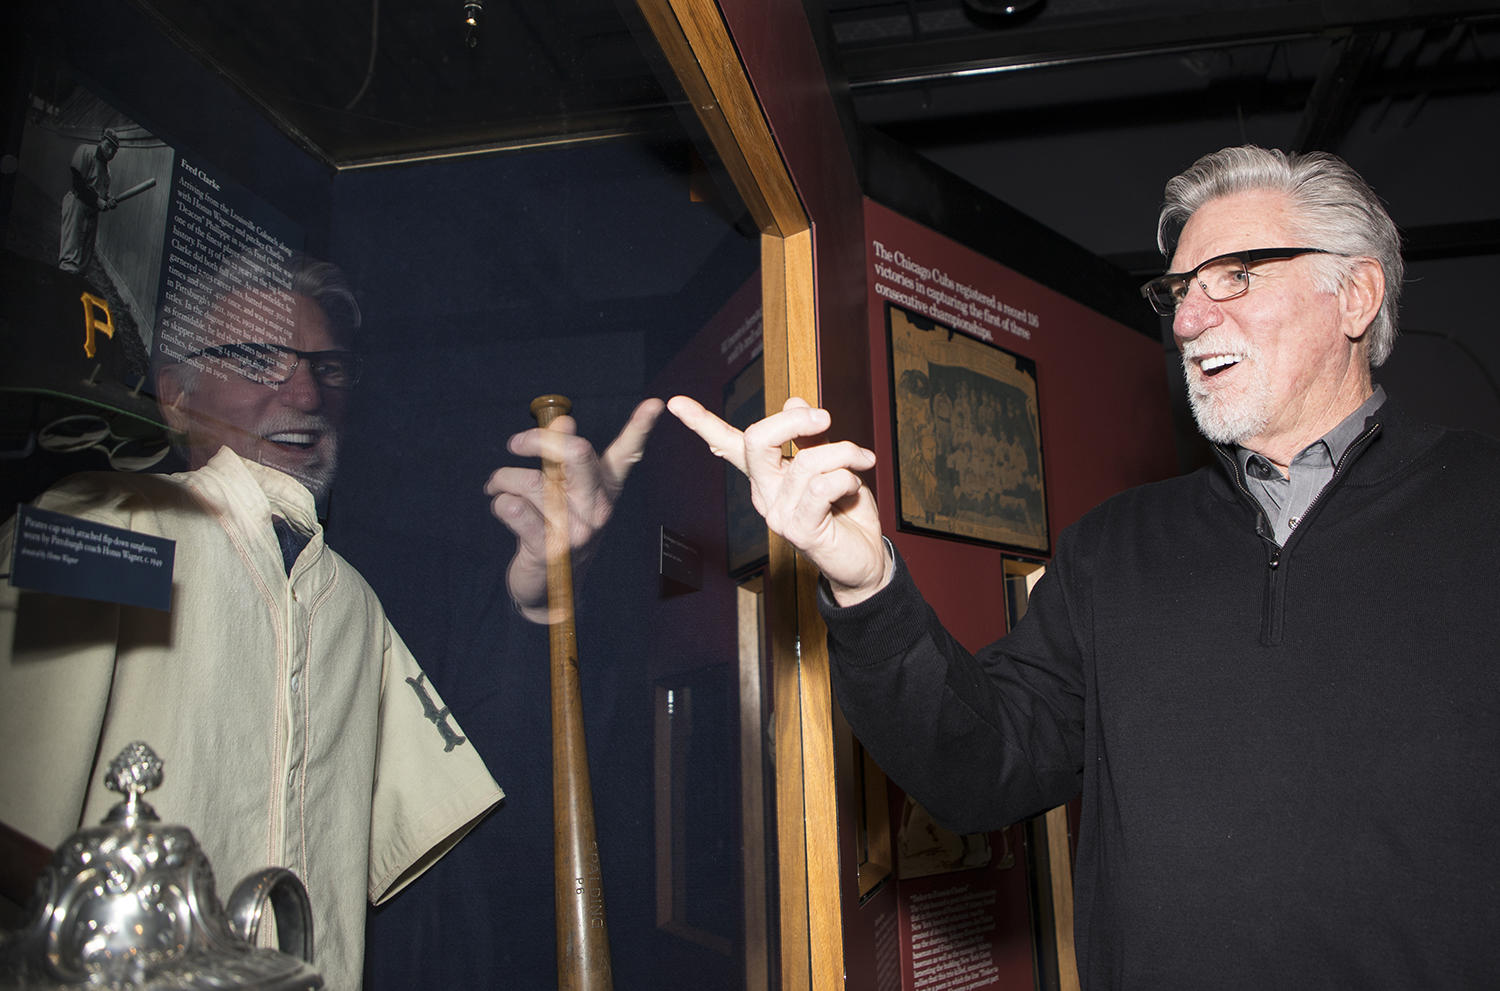 Hall of Famer Jack Morris looks at artifacts on the Museum's timeline during his Feb. 13 orientation tour. (Milo Stewart Jr./National Baseball Hall of Fame and Museum)